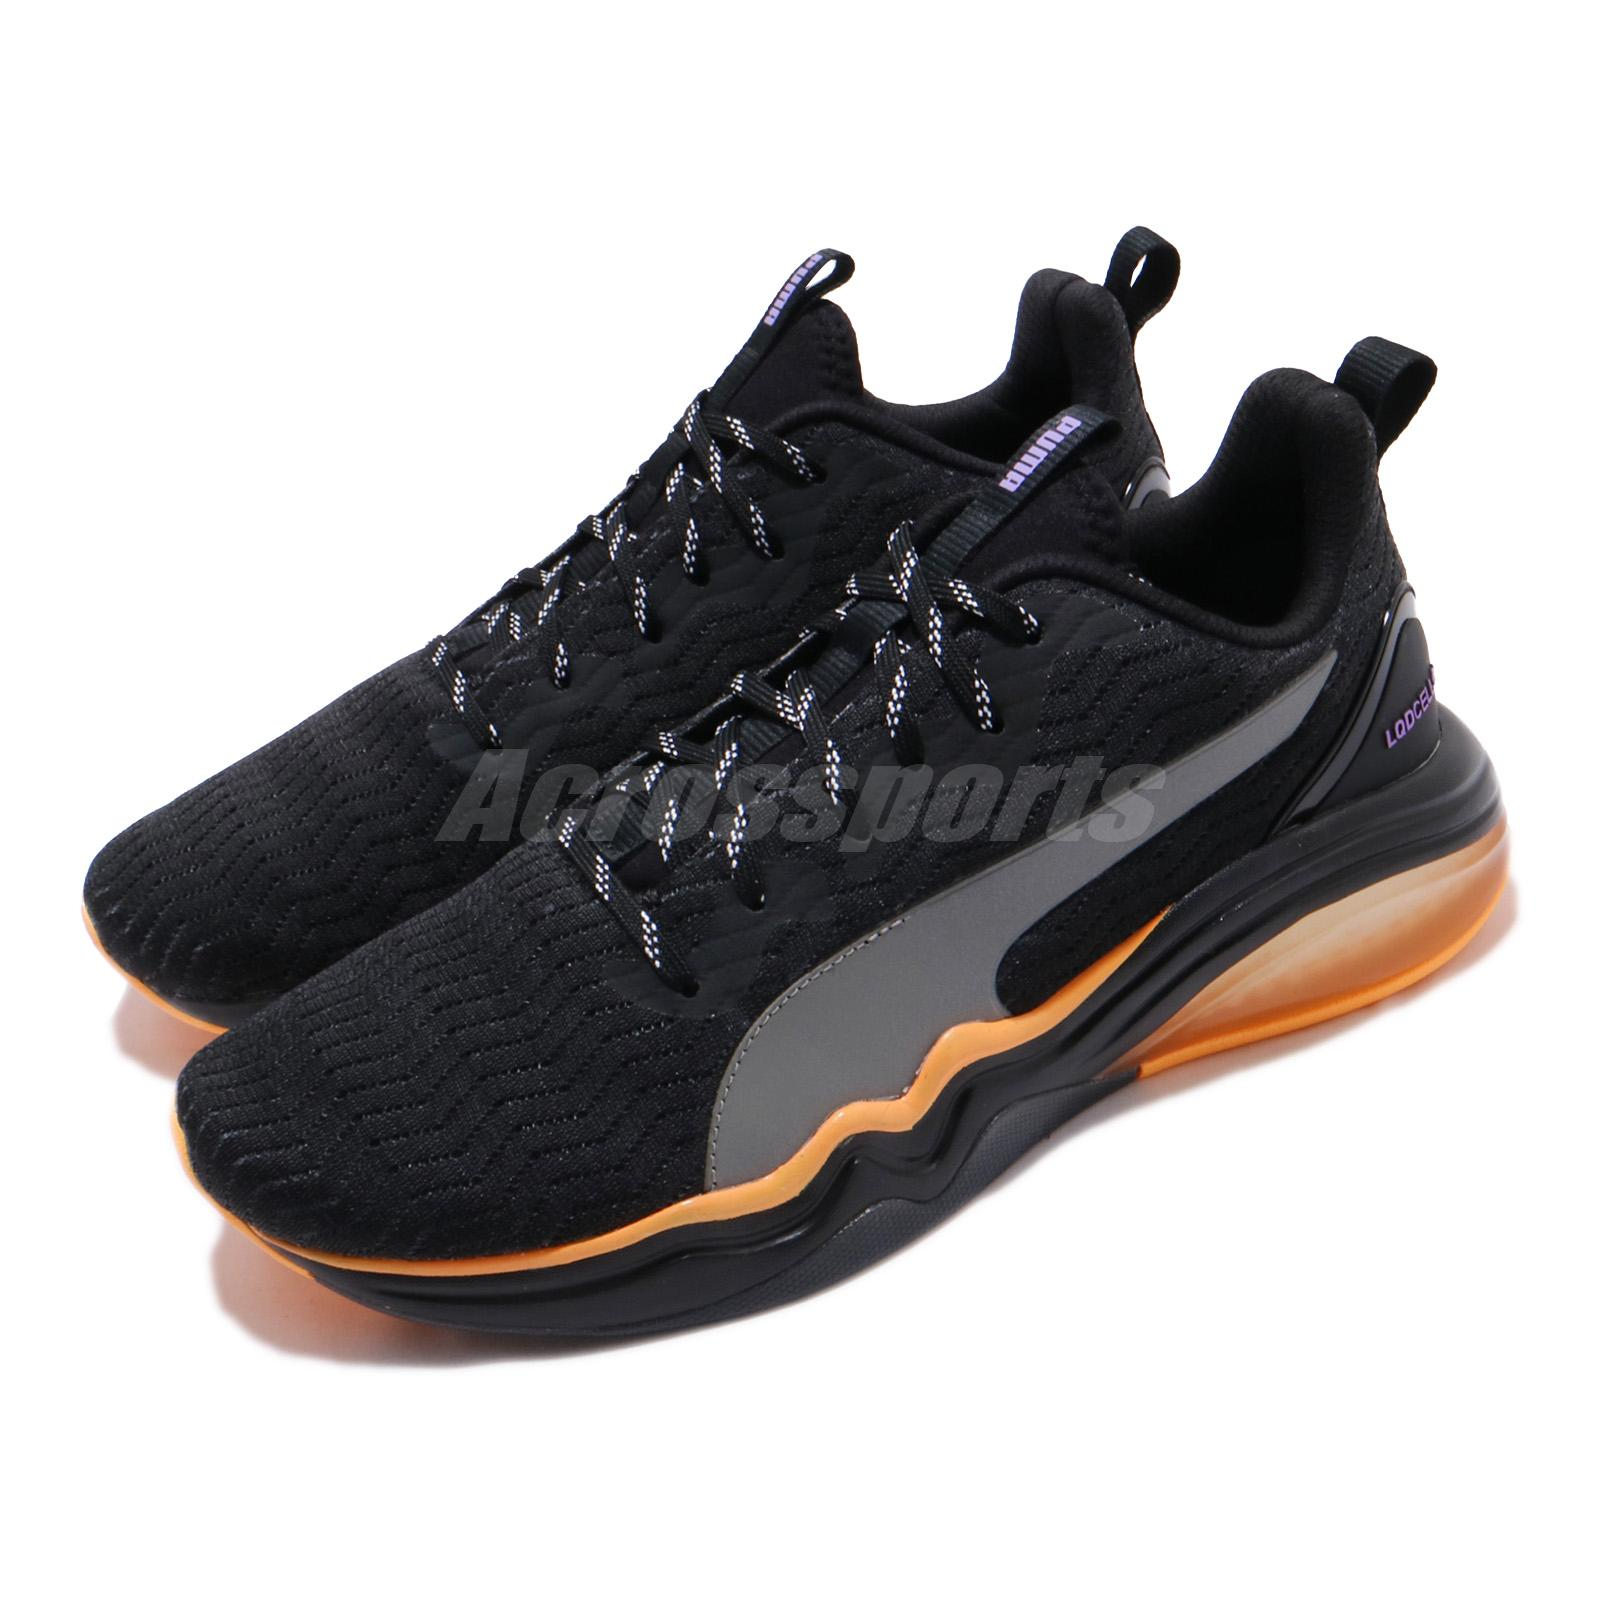 Details about Puma LQDCell Tension Rave Black Orange Men Cross Training  Shoe Sneaker 192609-01